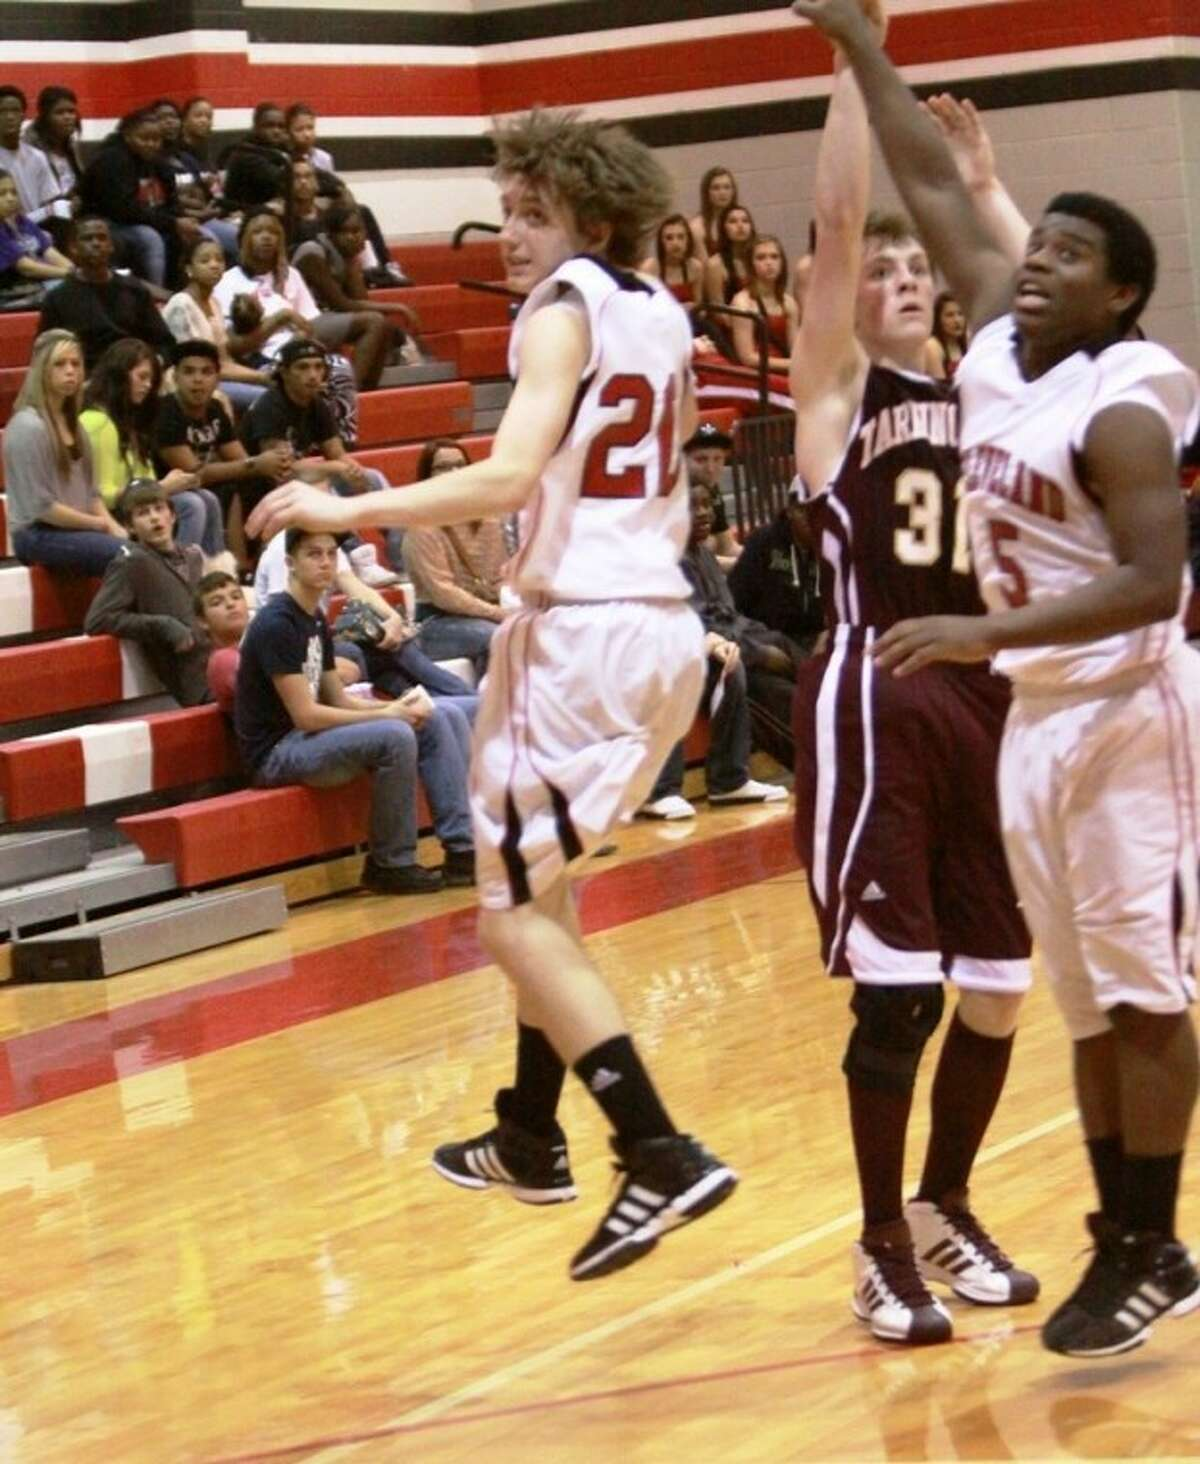 Nick Willis shoots over two Cleveland defenders for the game-winning shot in Tarkington's last second win over the Indians.